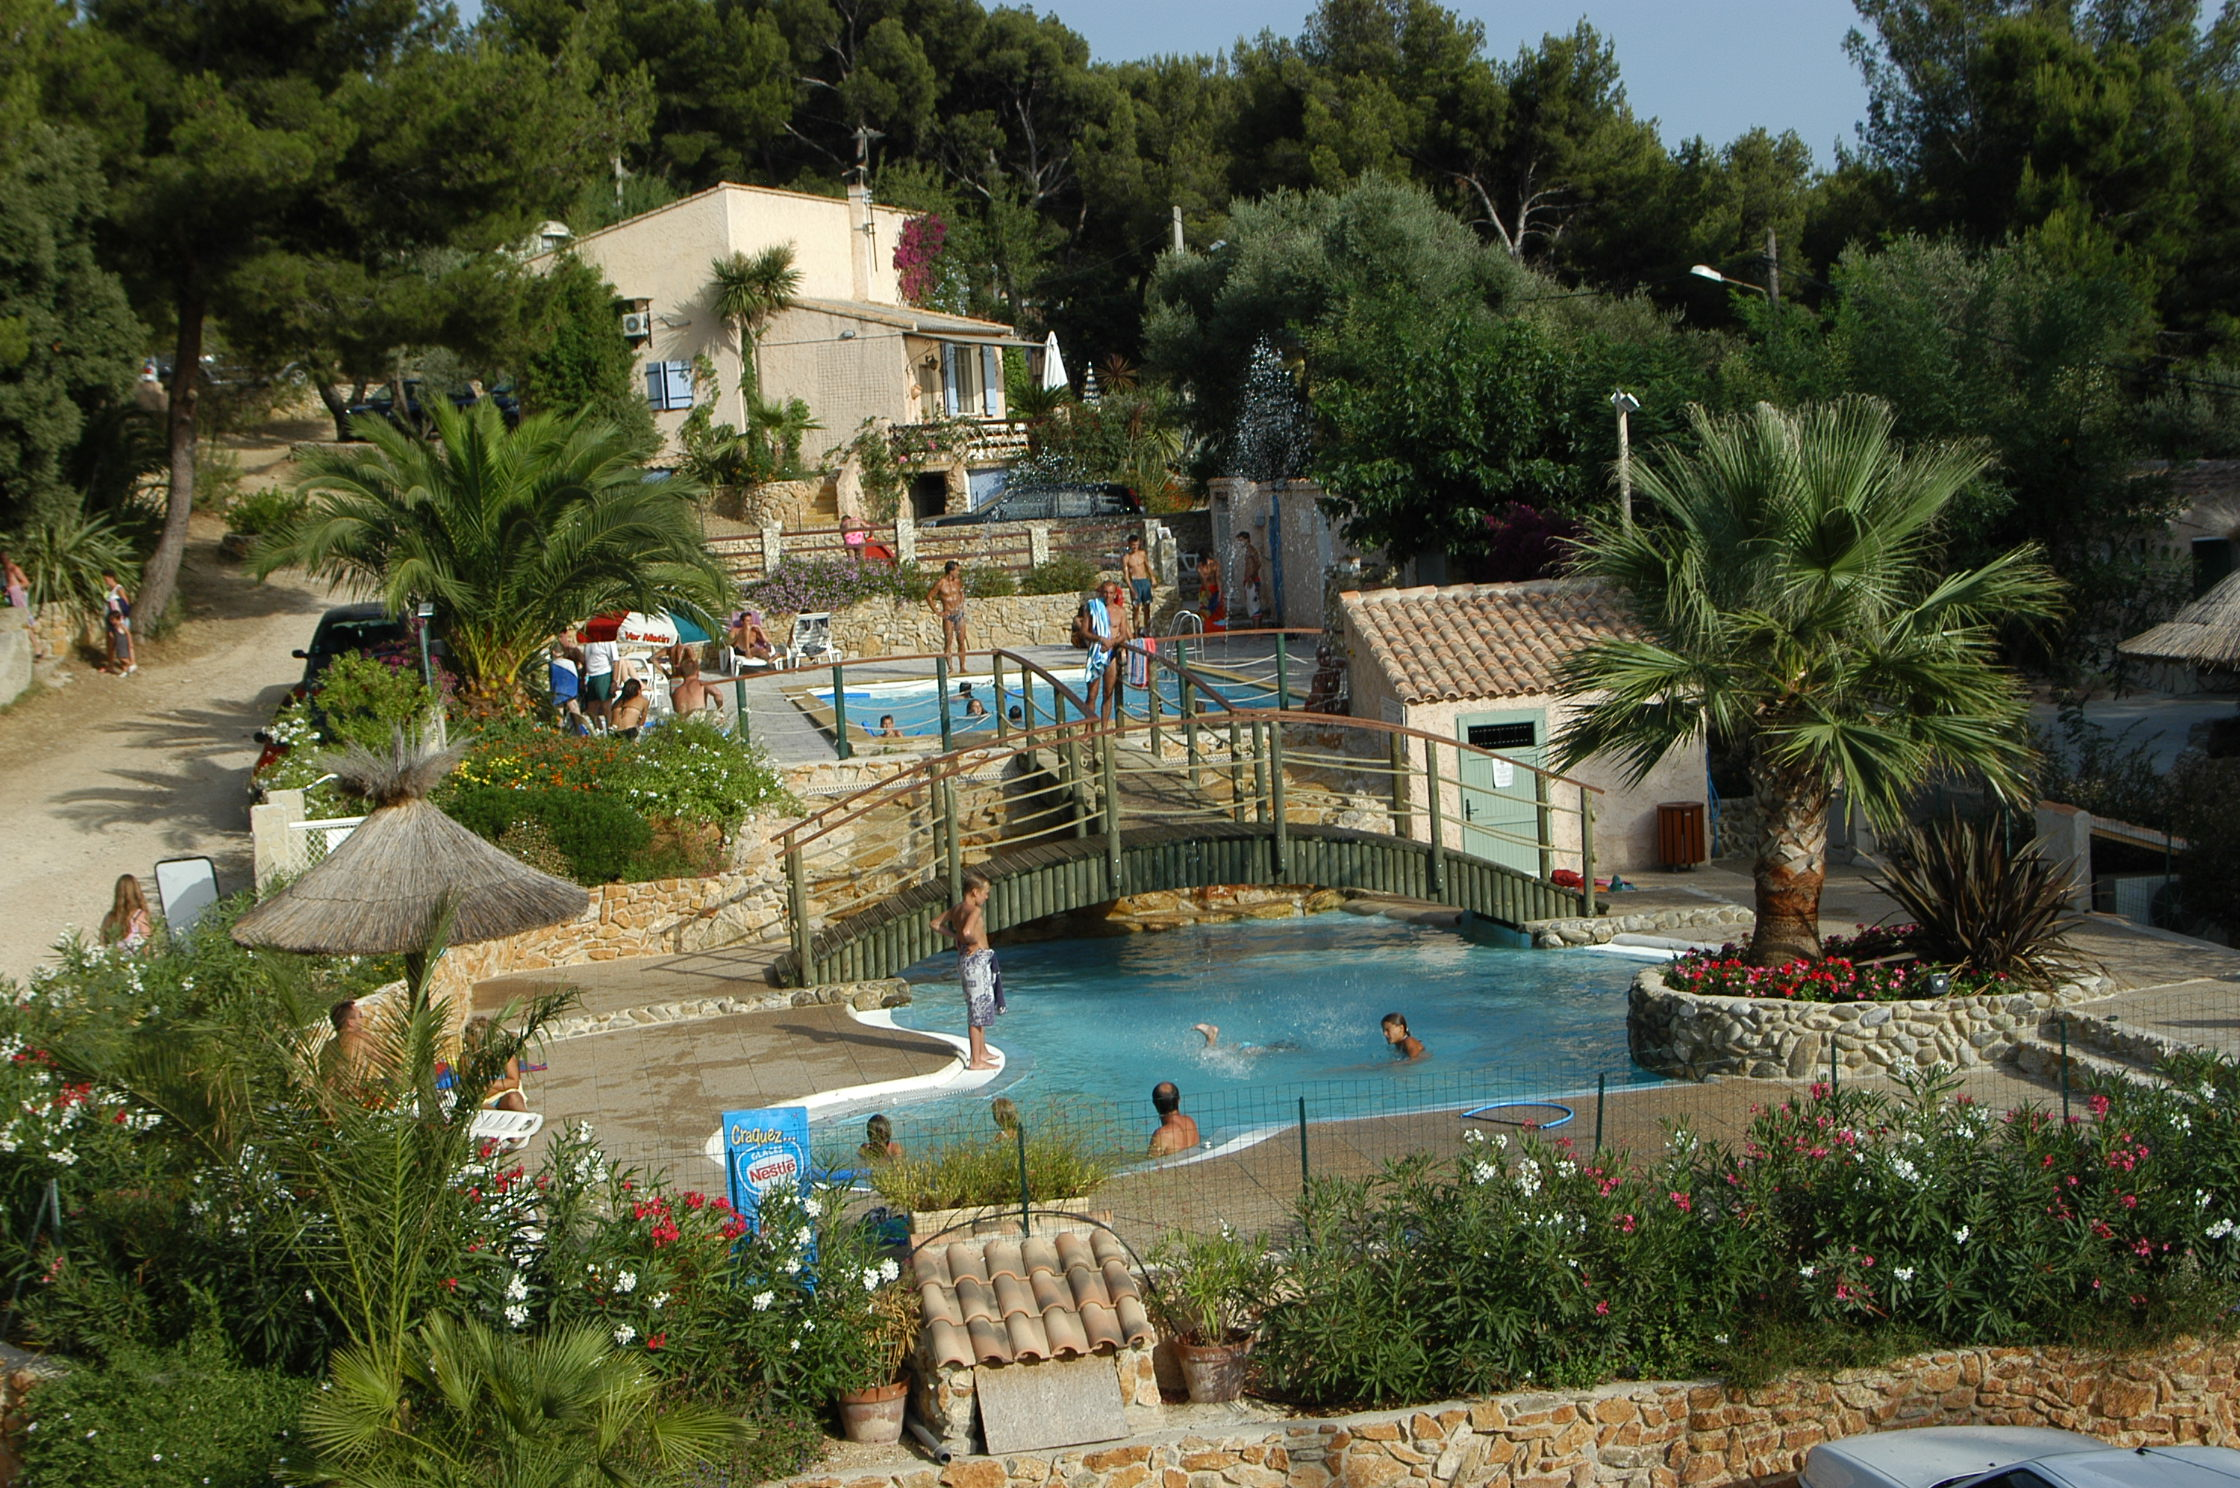 Camping clos st therese saint cyr sur mer provence alpes for Camping piscine